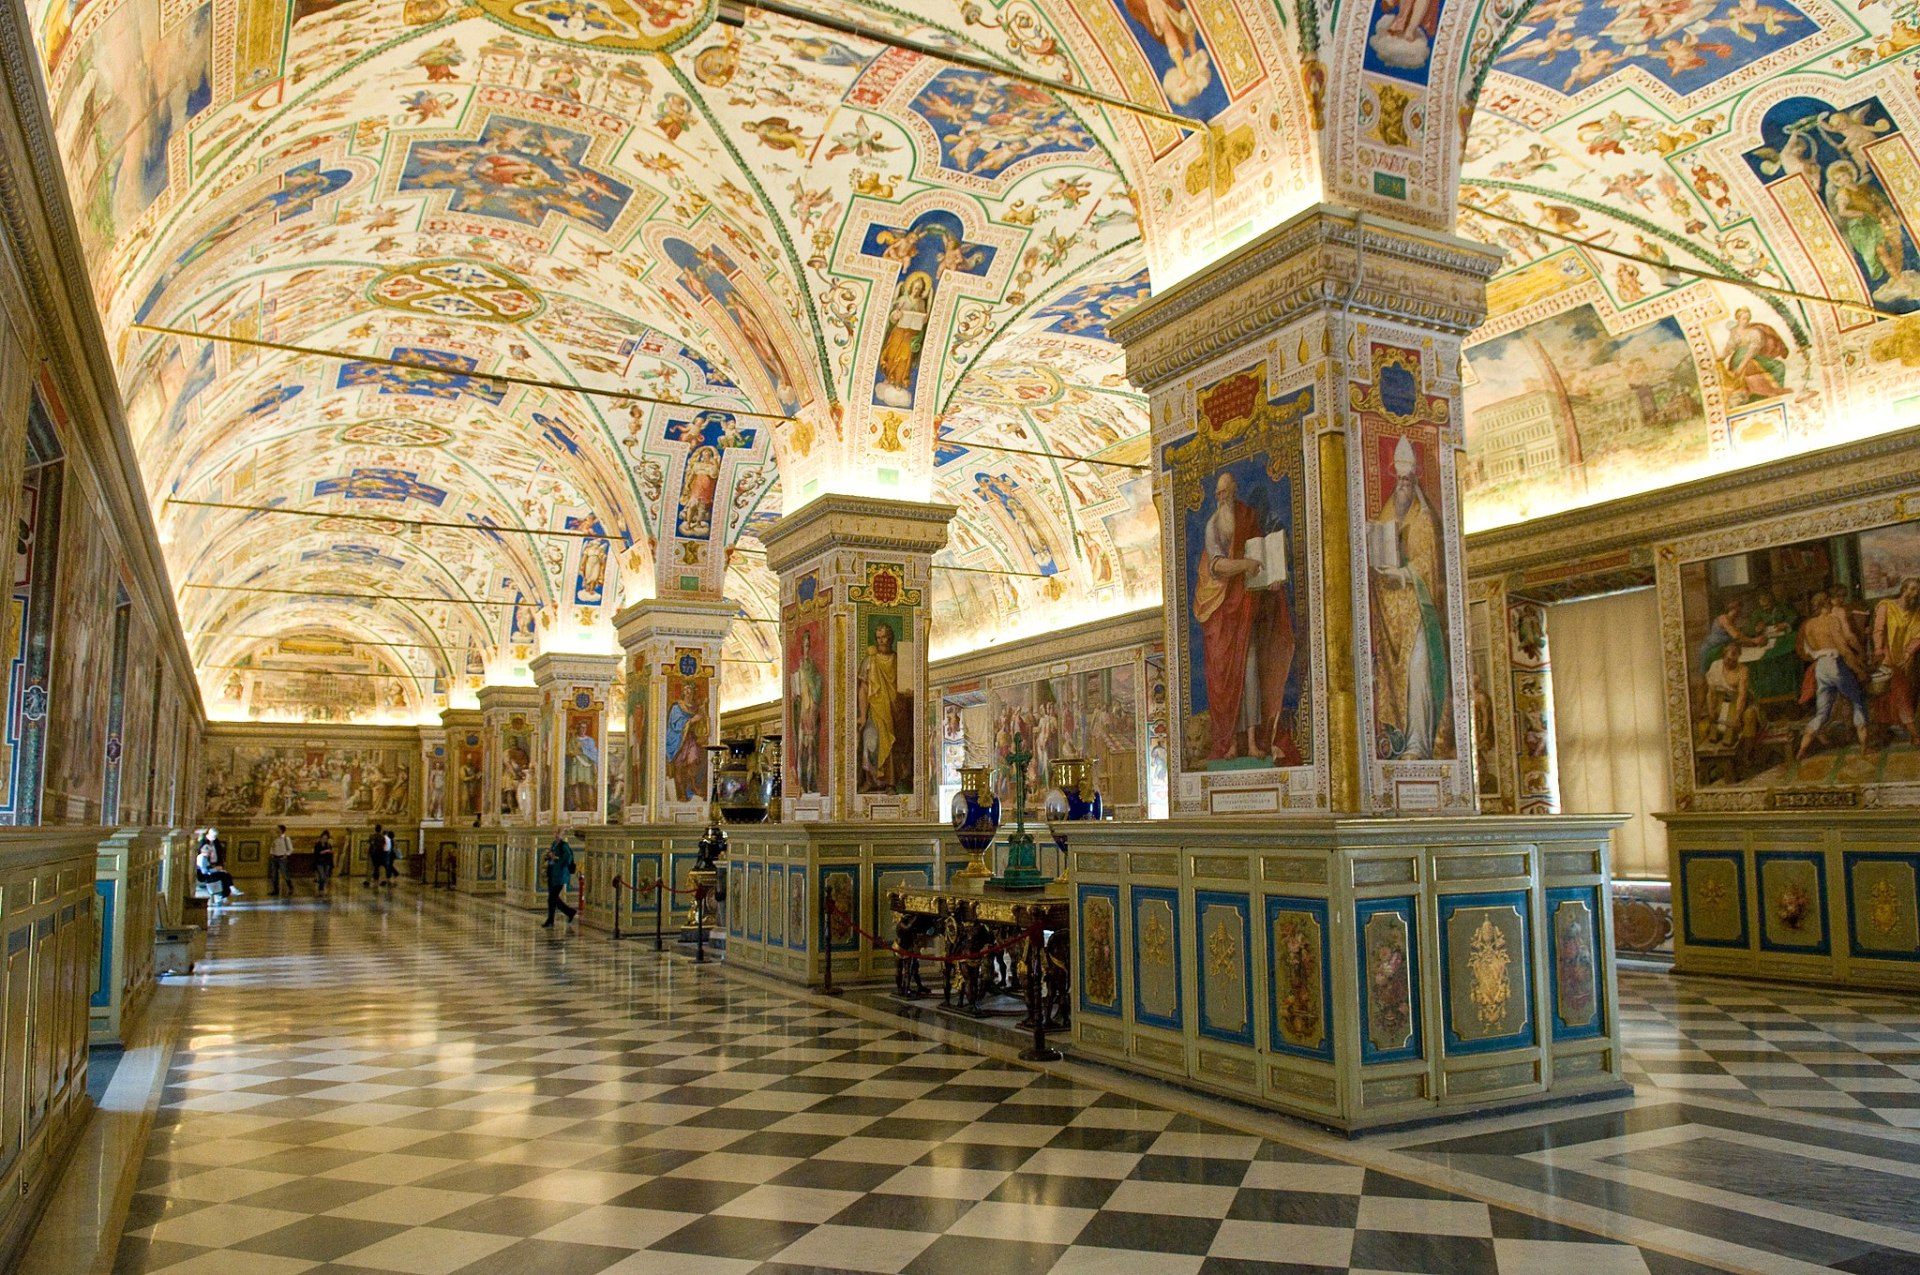 2048px-The_Sistine_Hall_of_the_Vatican_Library_(2994335291)